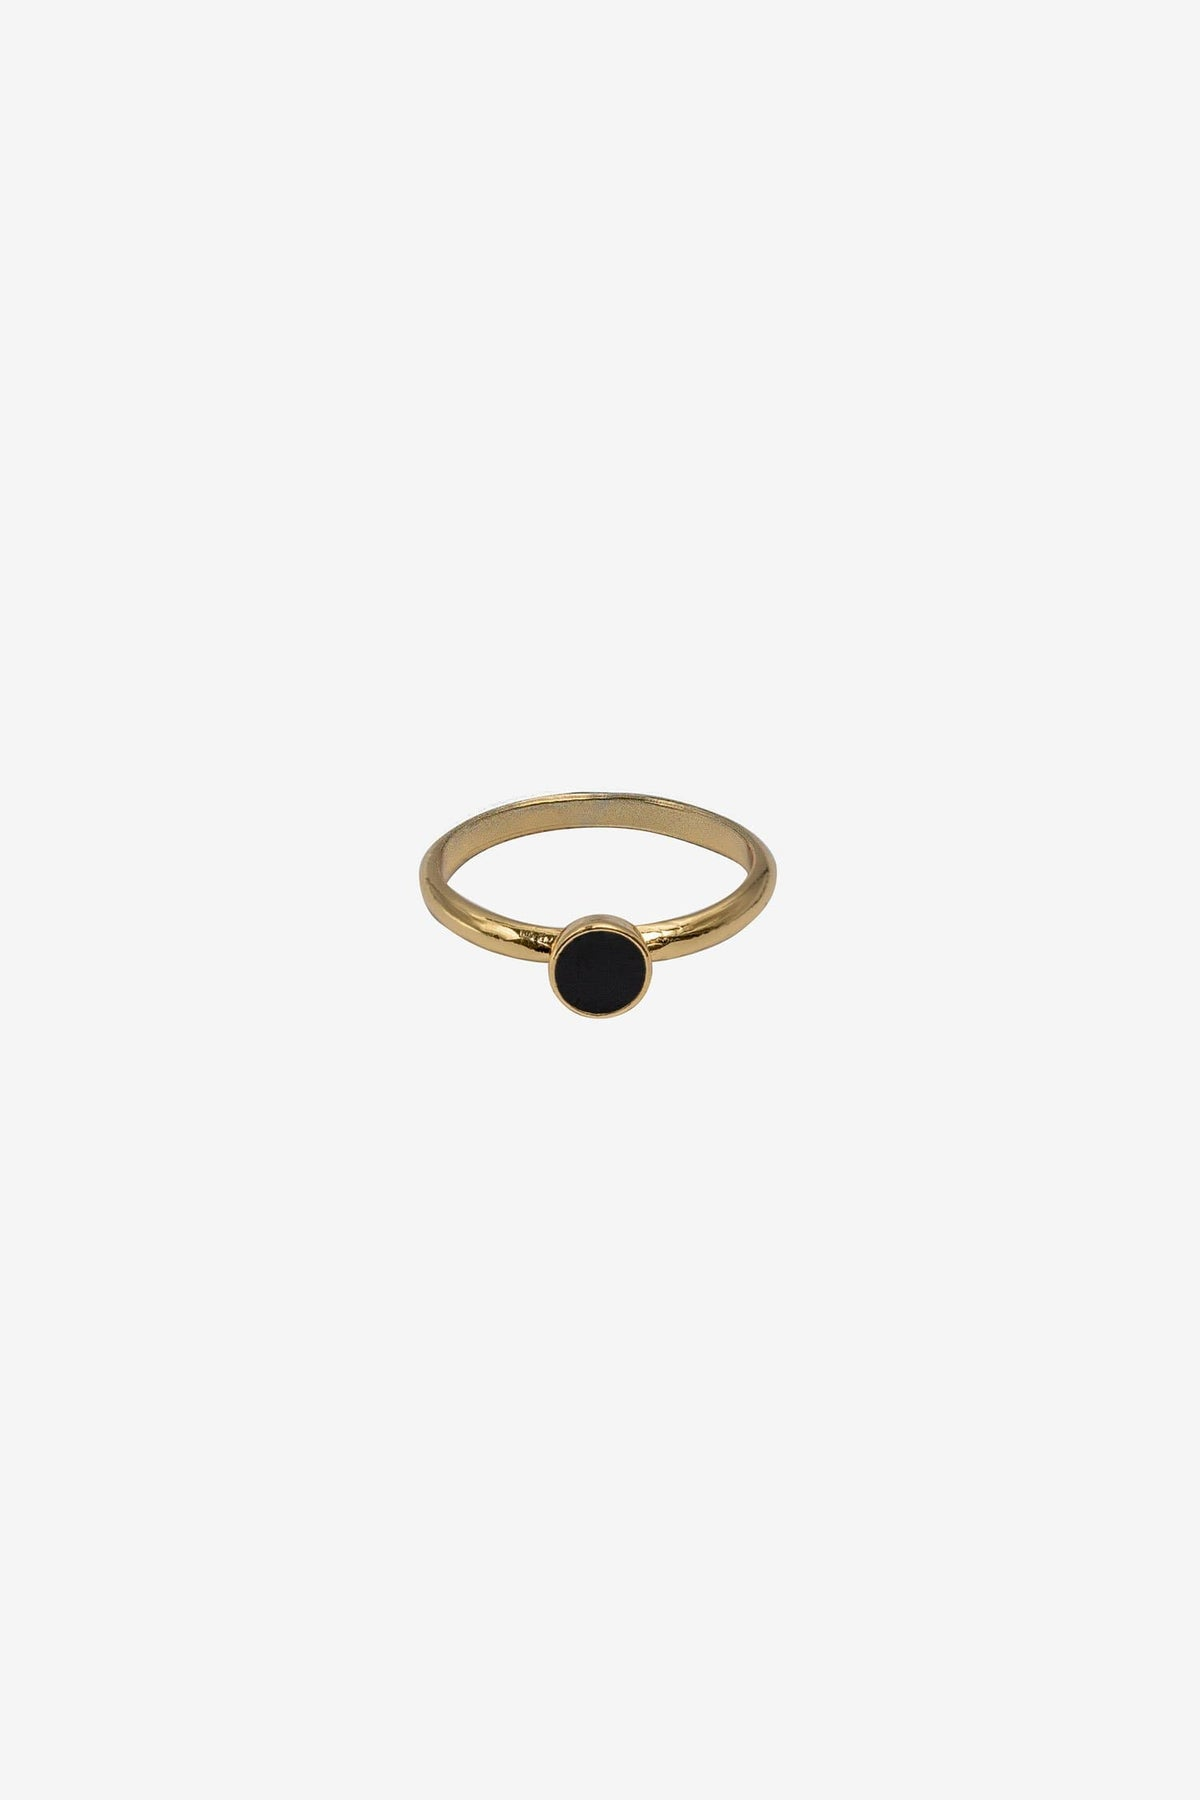 RNGBLCKU - 5mm Universal Enamel Ring